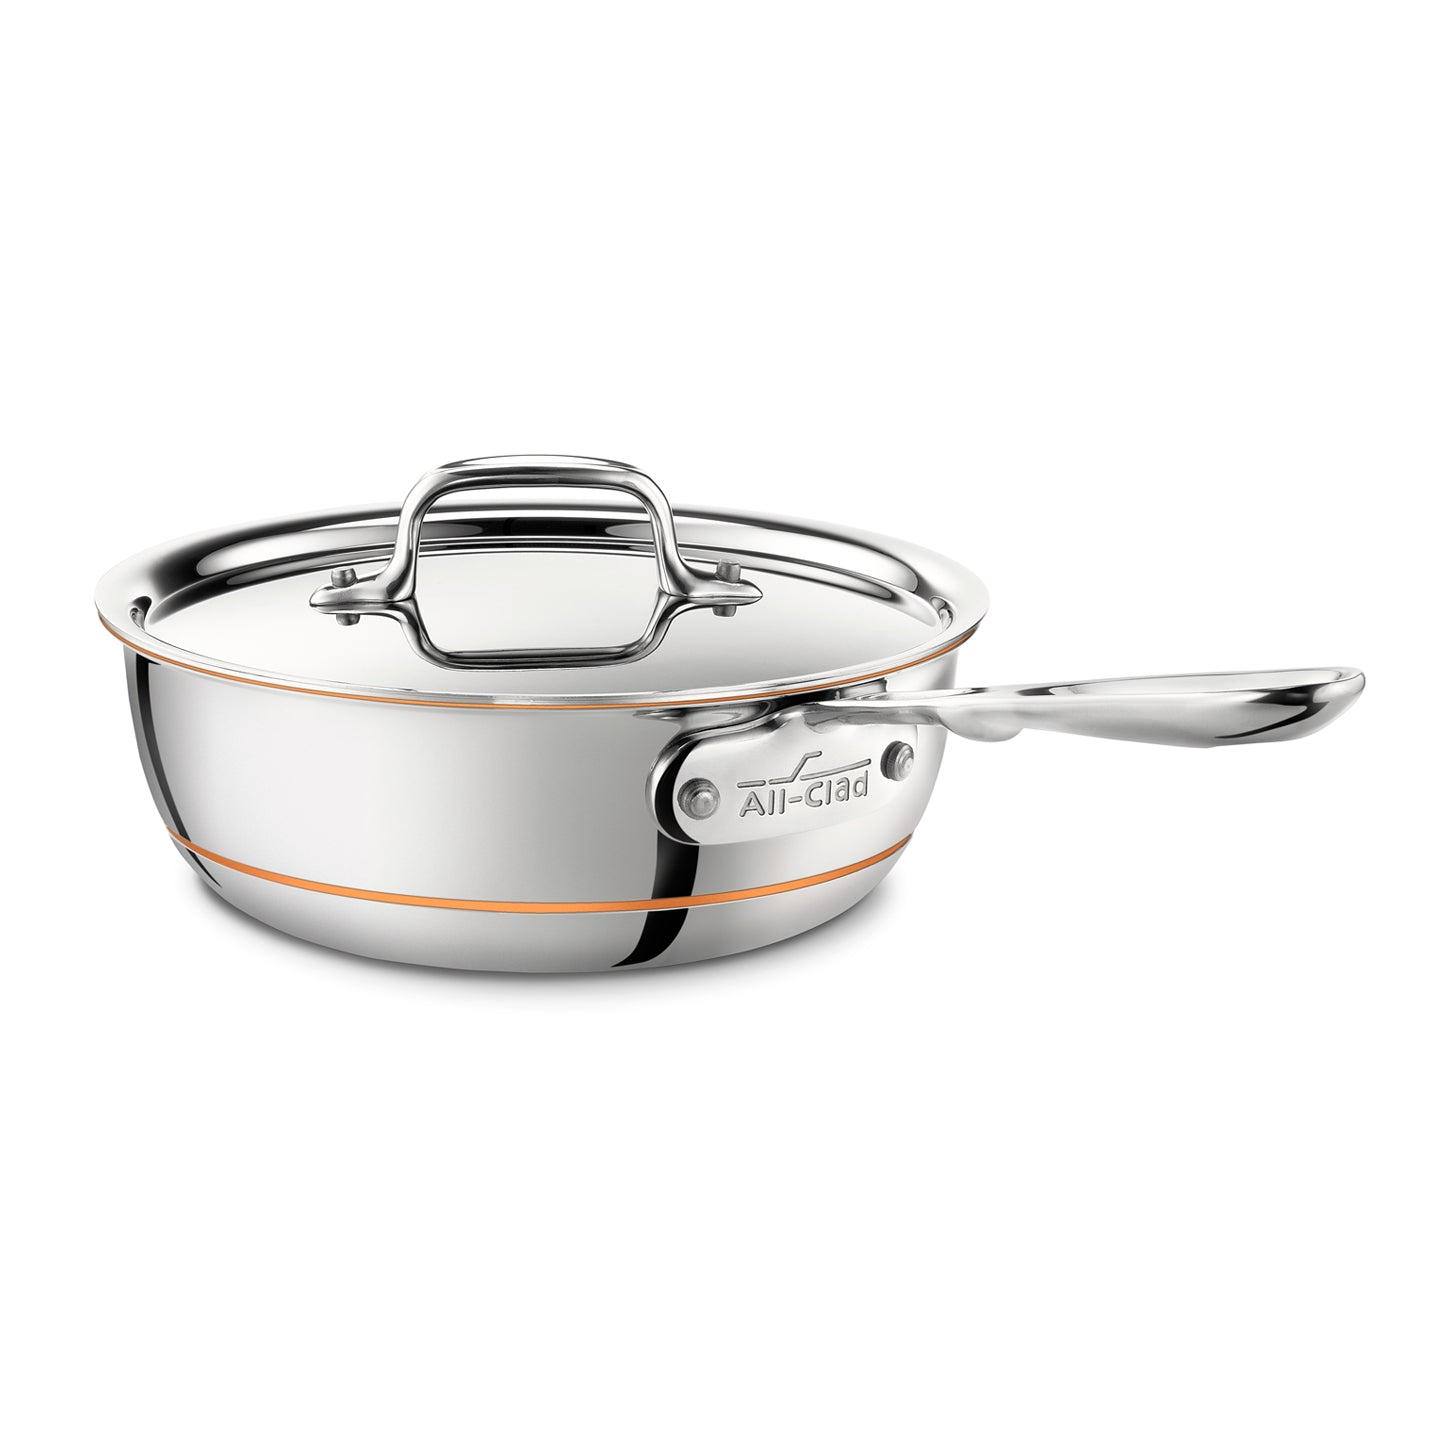 All-Clad Copper Core Curved Splayed Saute Pan with Lid 22cm / 2Qt